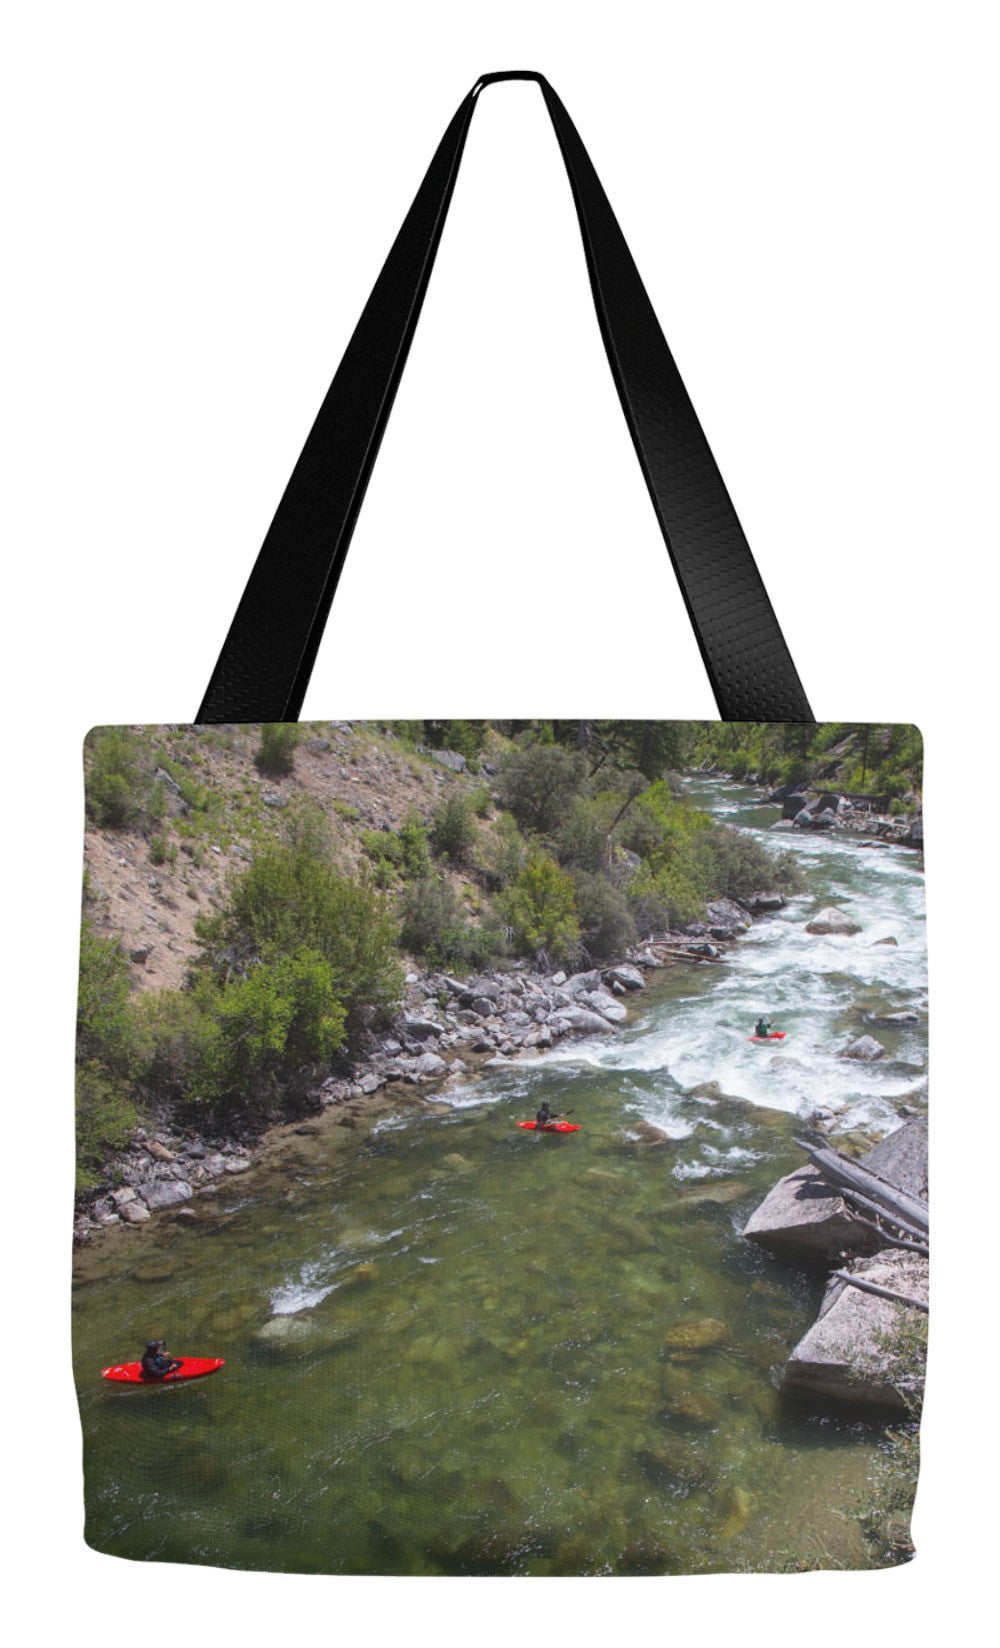 Tote Bag- Kayaking